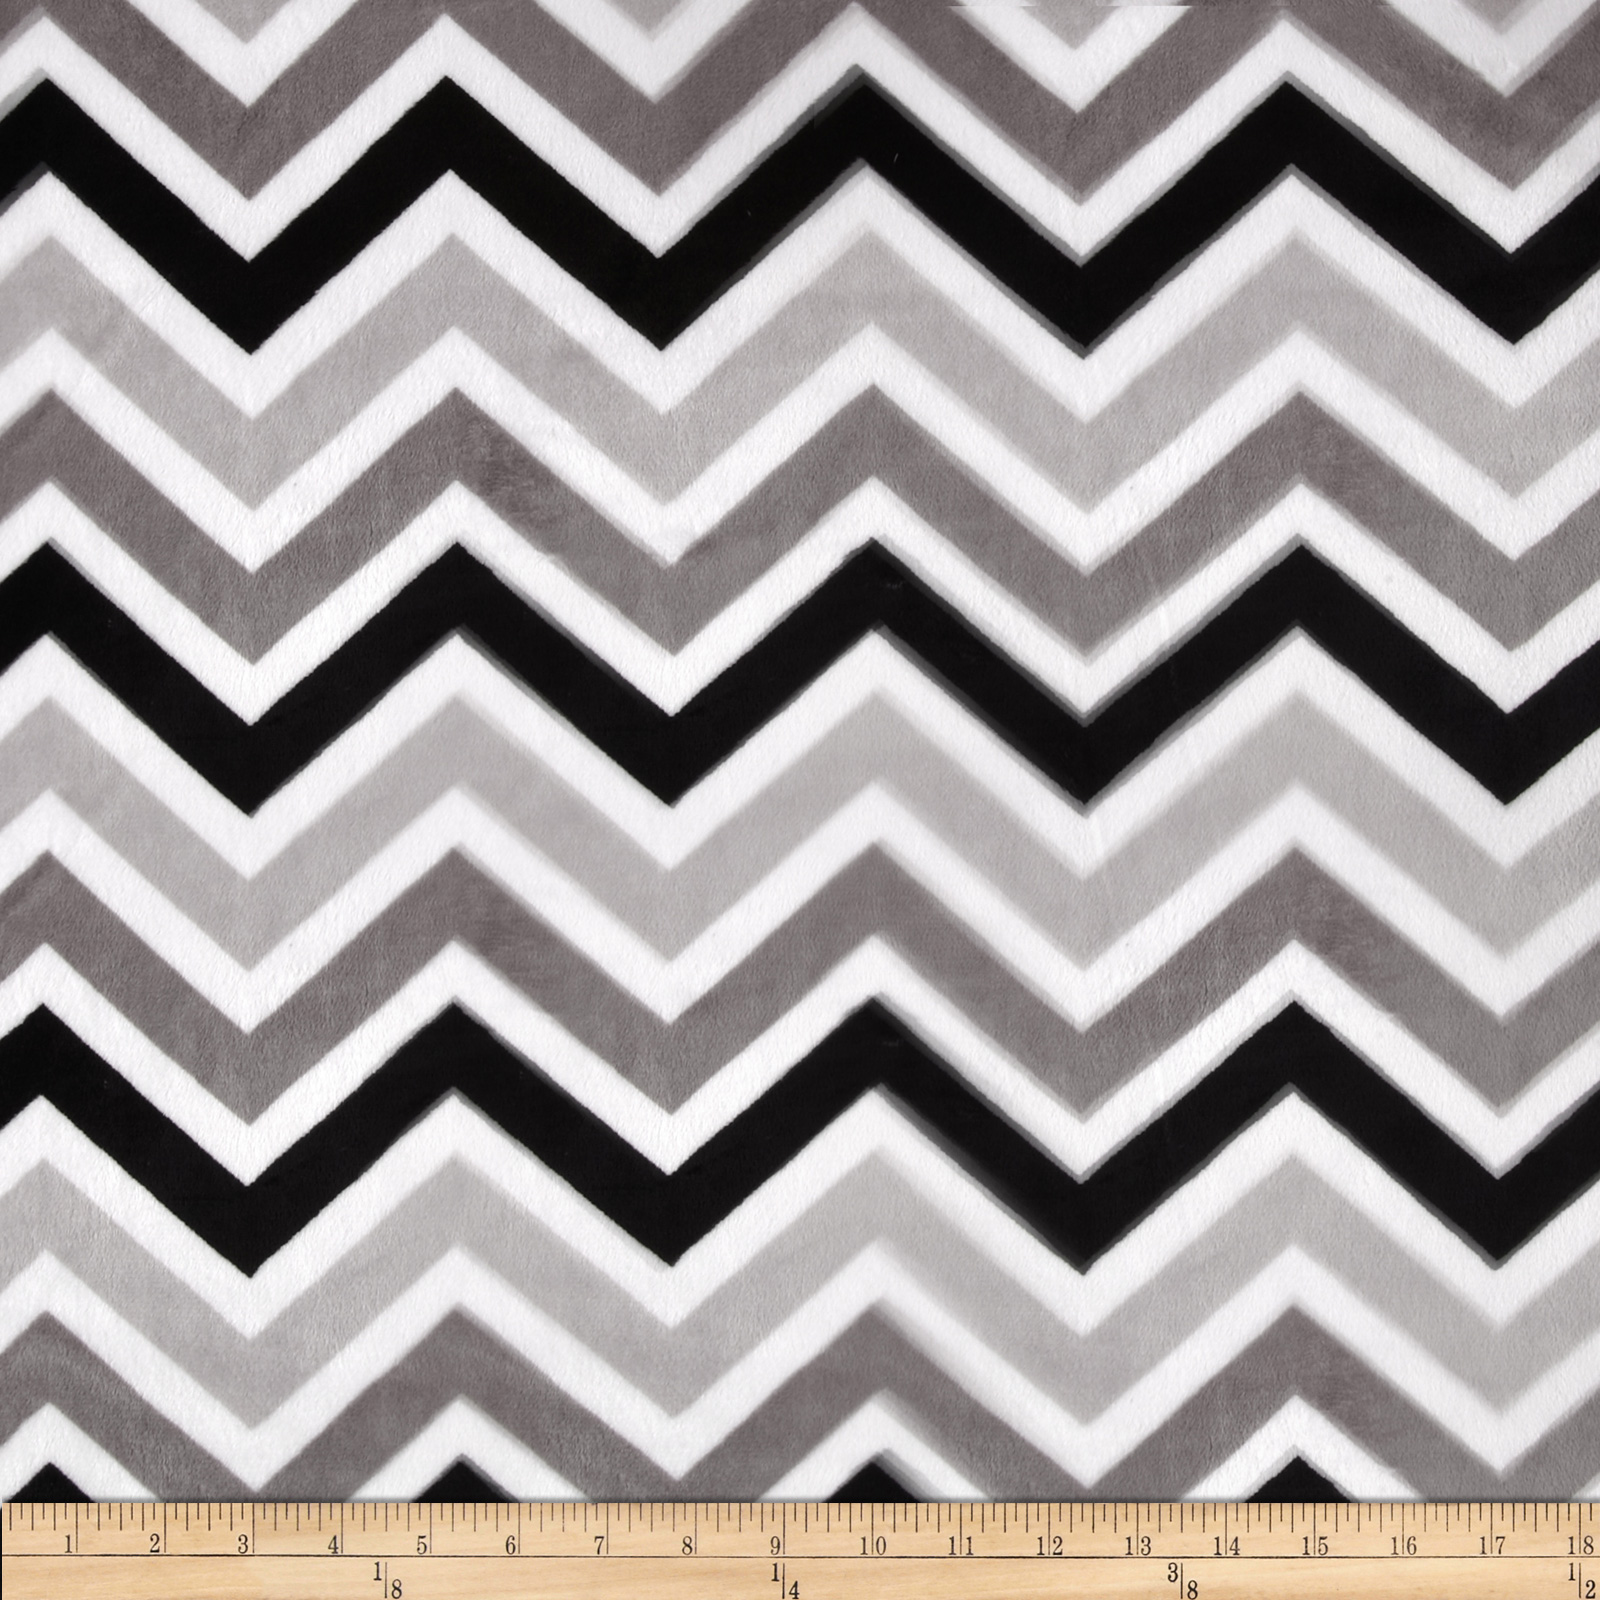 Minky Cuddle Zig Zag Black/Silver/Snow Fabric